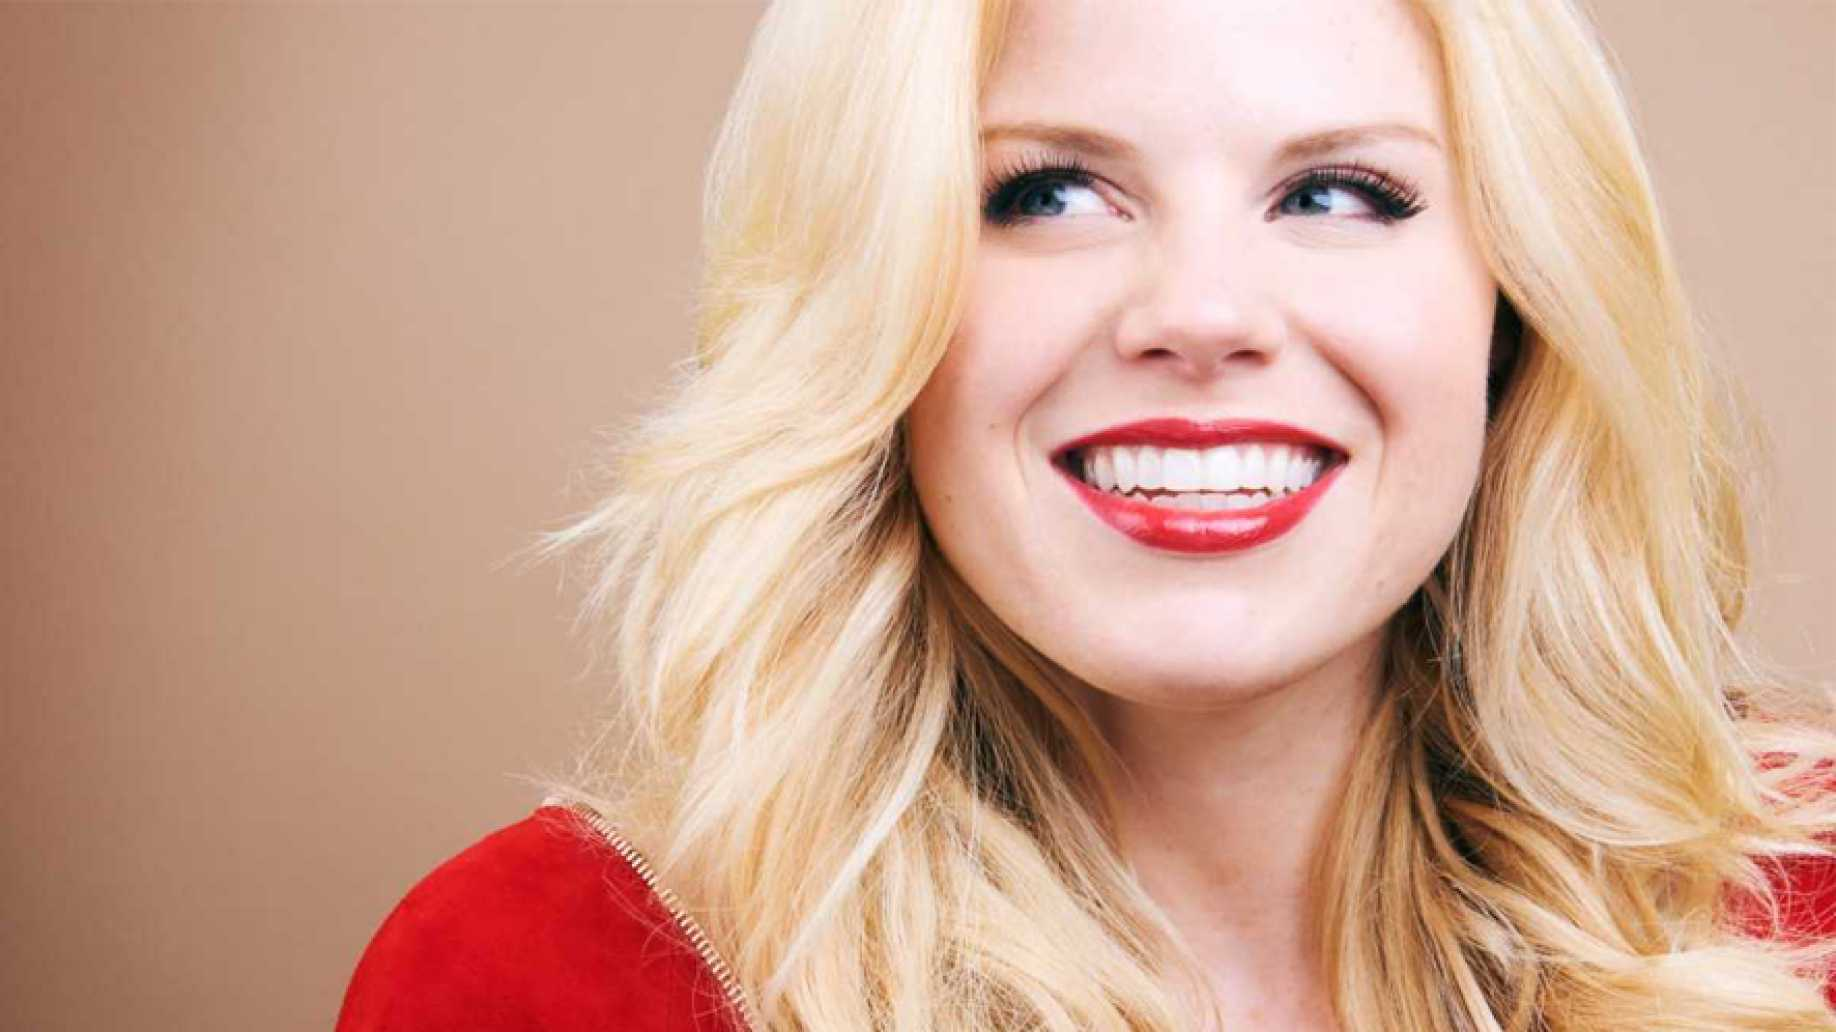 Megan Hilty on Wednesday, December 19 at 7:30 & 9:30 pm